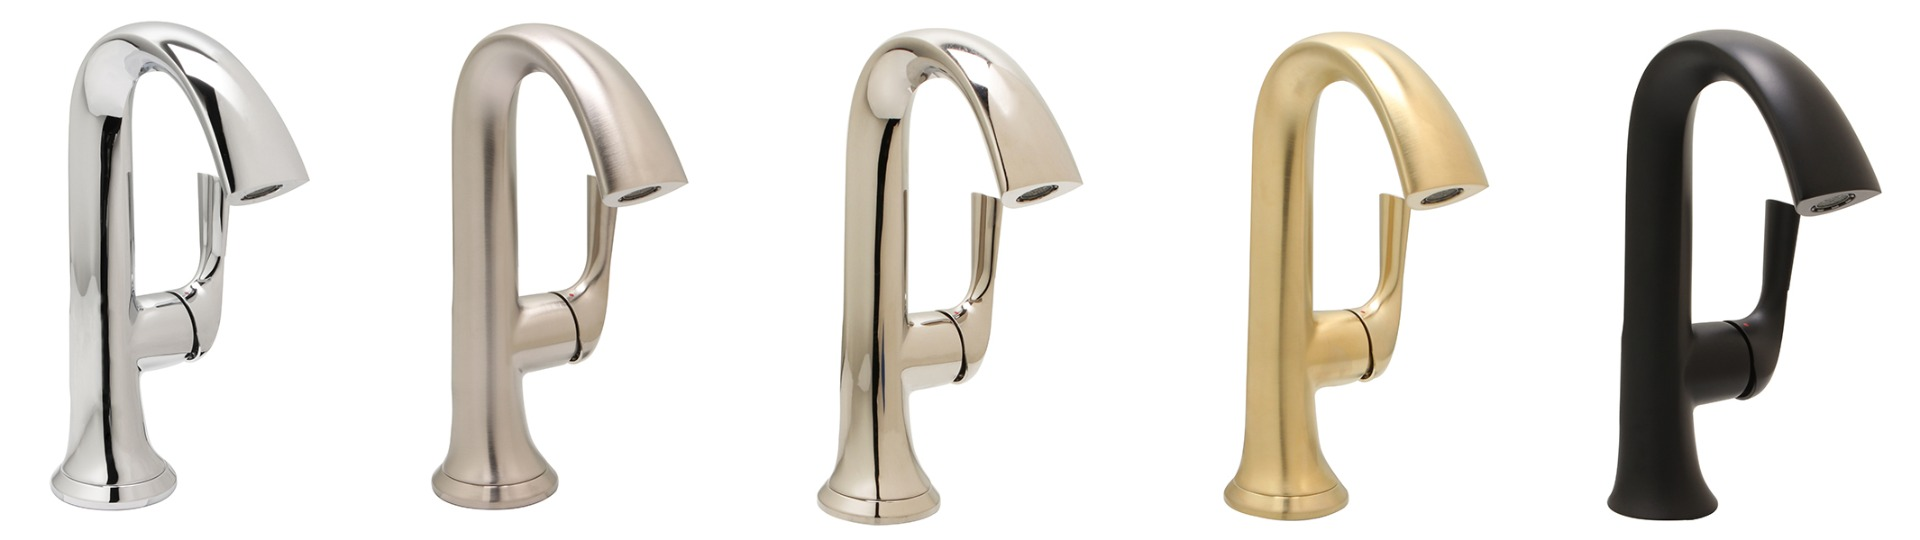 Joy faucet finishes